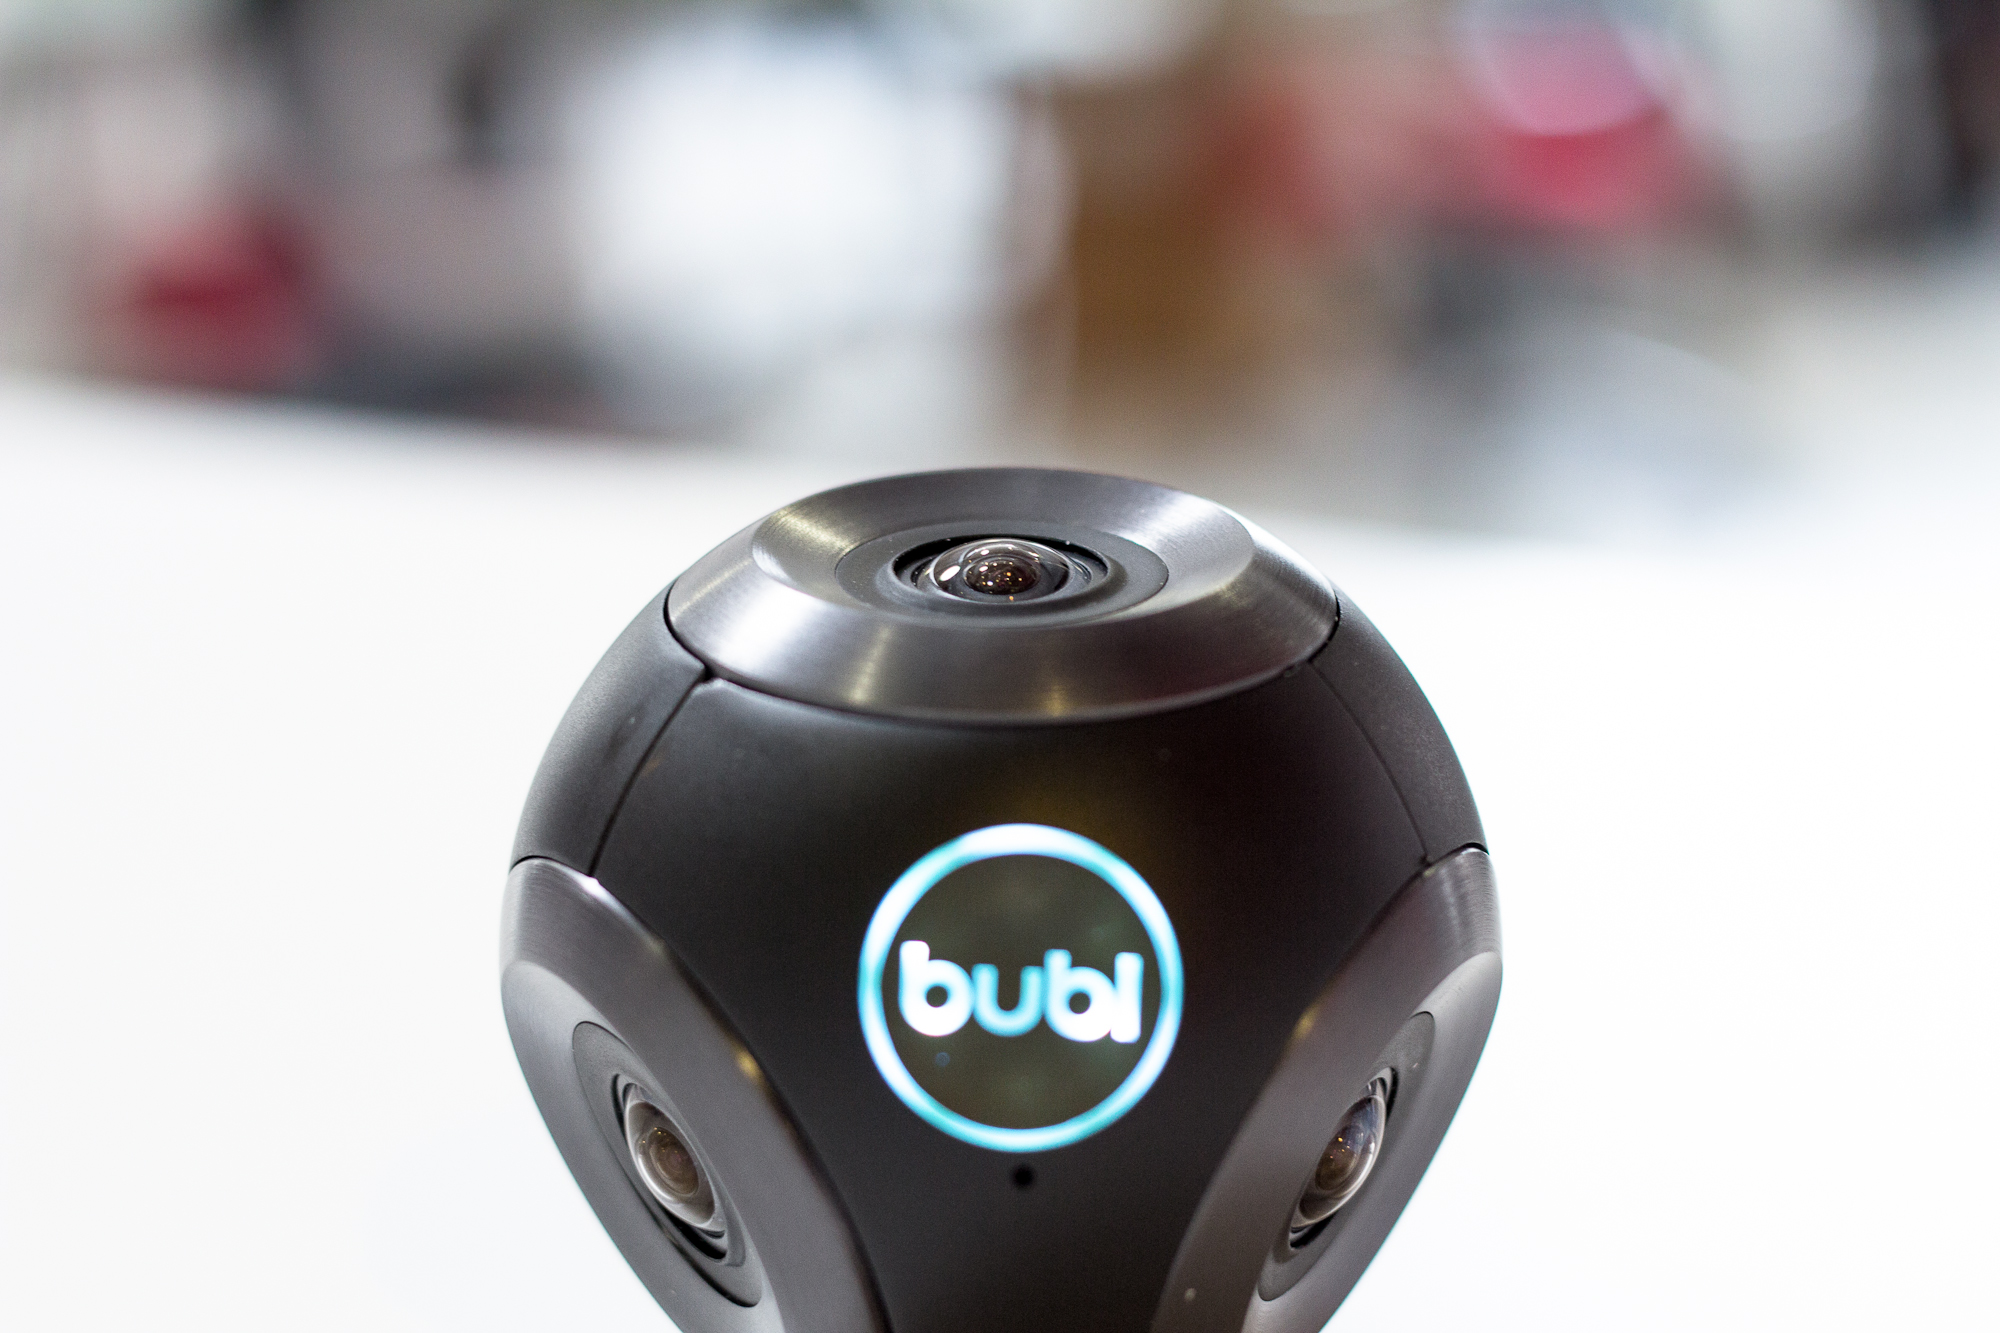 Bublcam 360 camera is the next best thing autoevolution